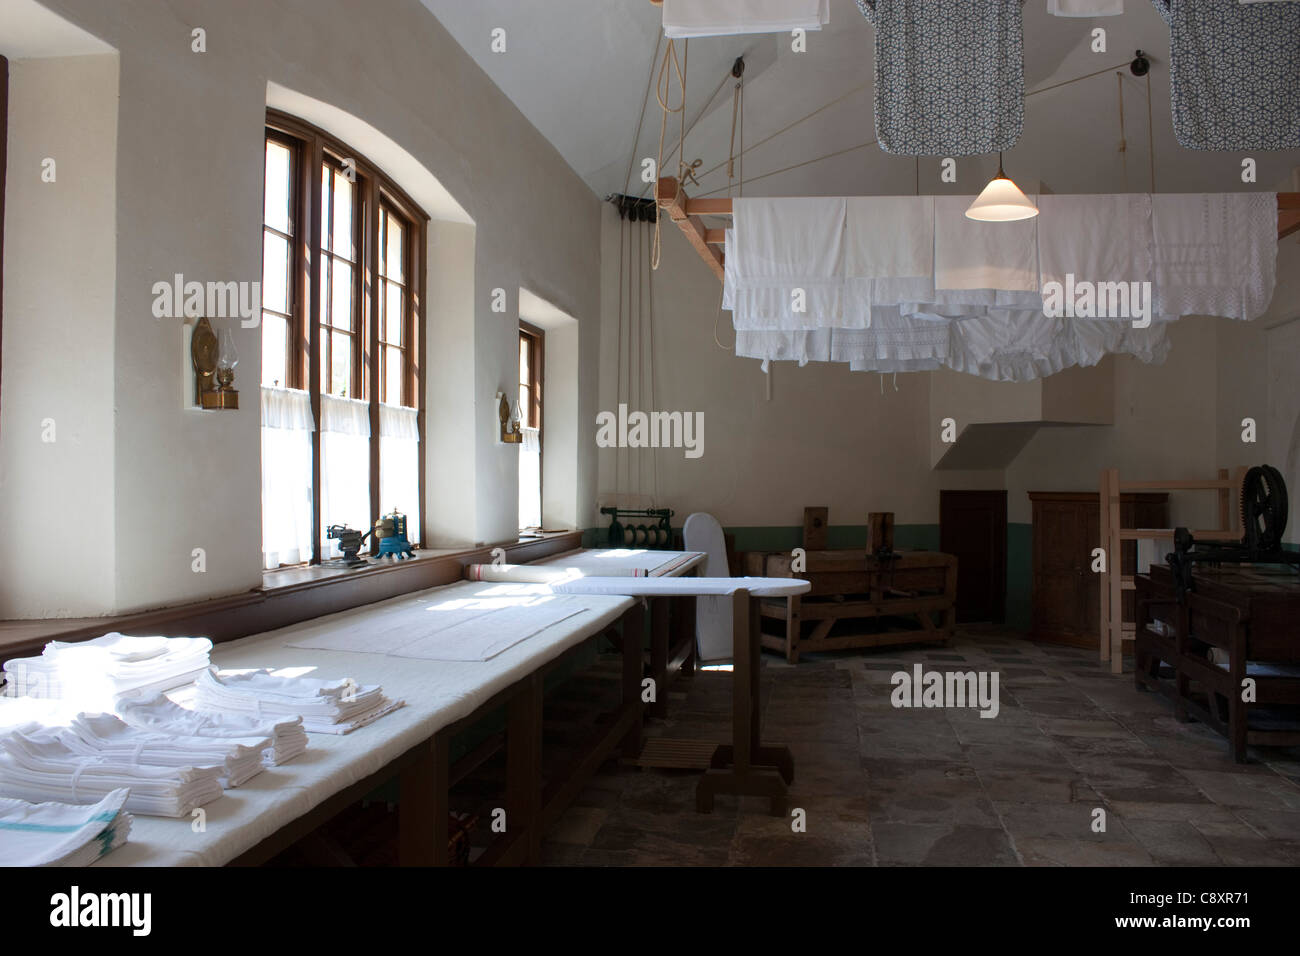 The laundry room at Audley End House and Gardens, Essex, England - Stock Image